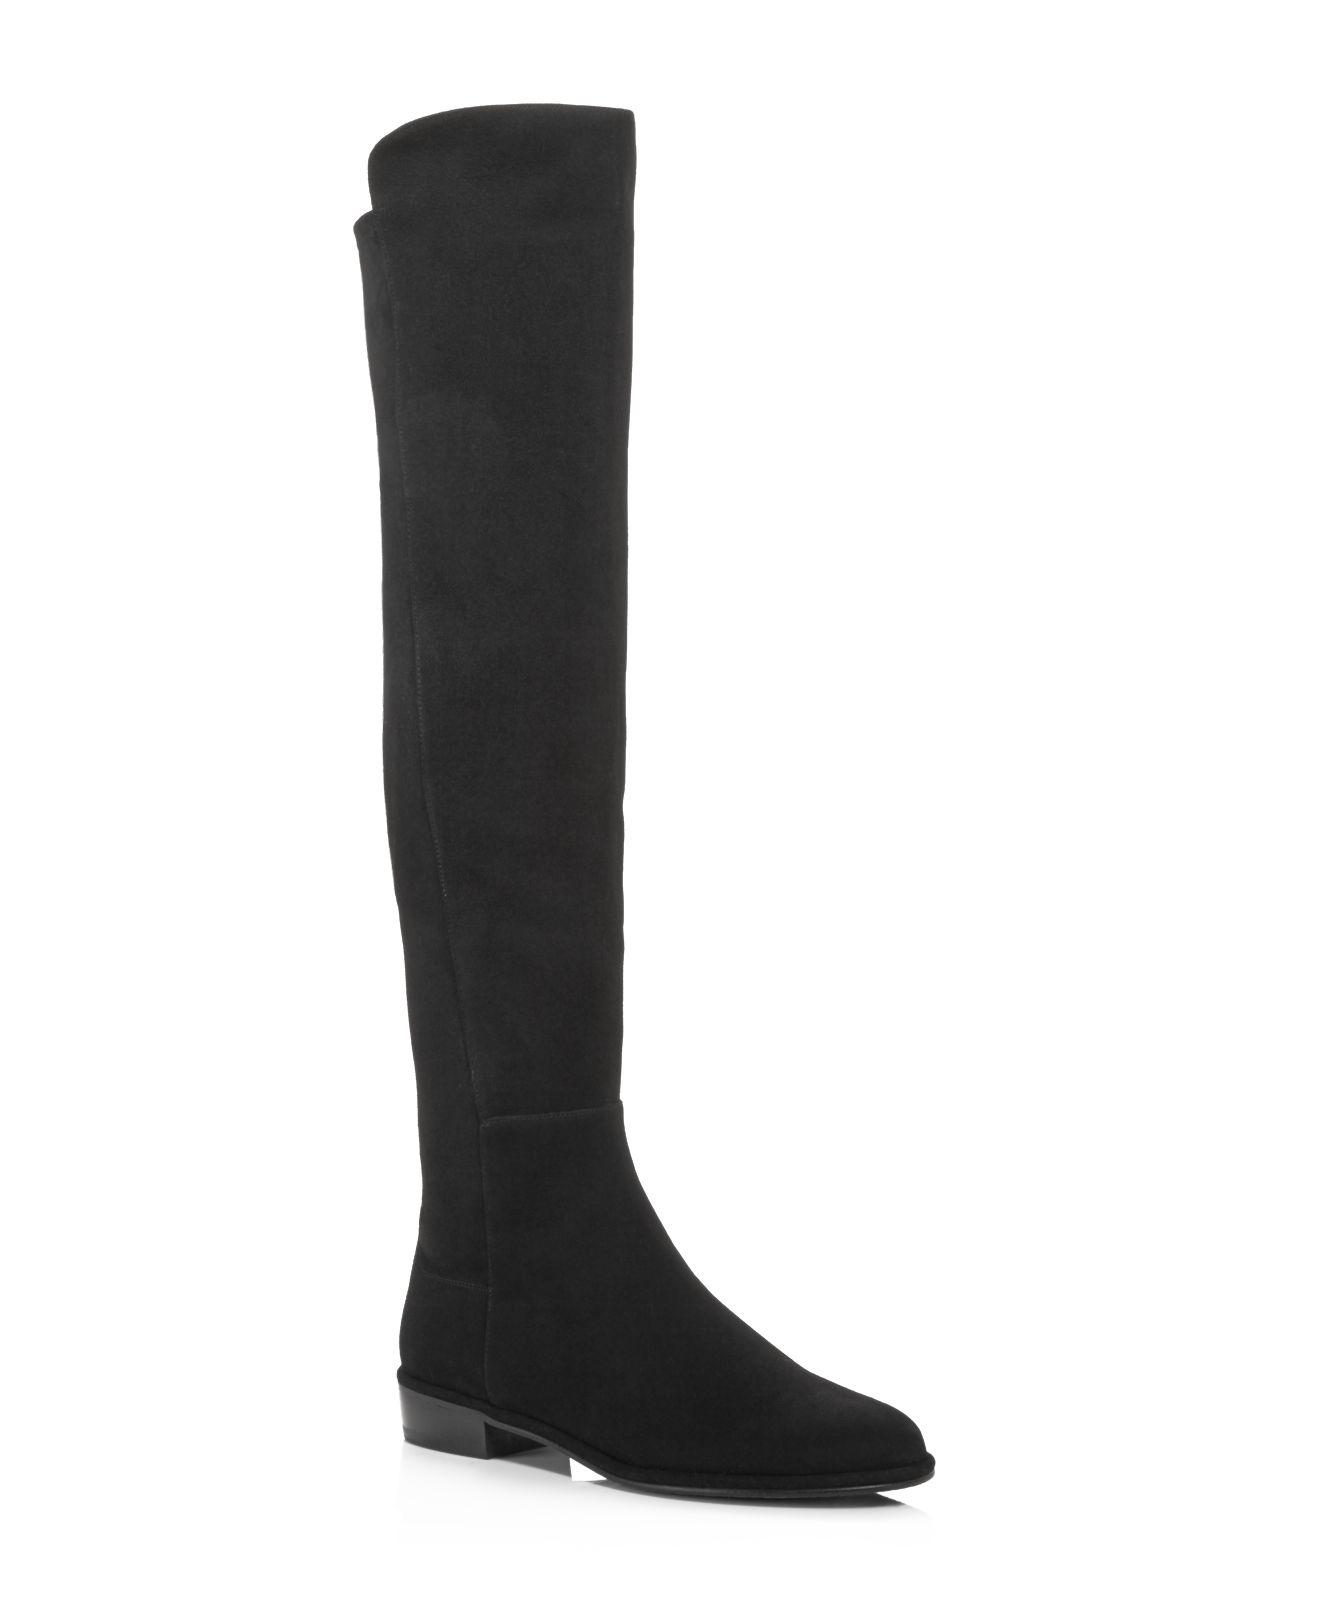 Get Authentic Stuart Weitzman Allgood Skimmer over-the-knee boots Manchester For Sale drFYFcF7d